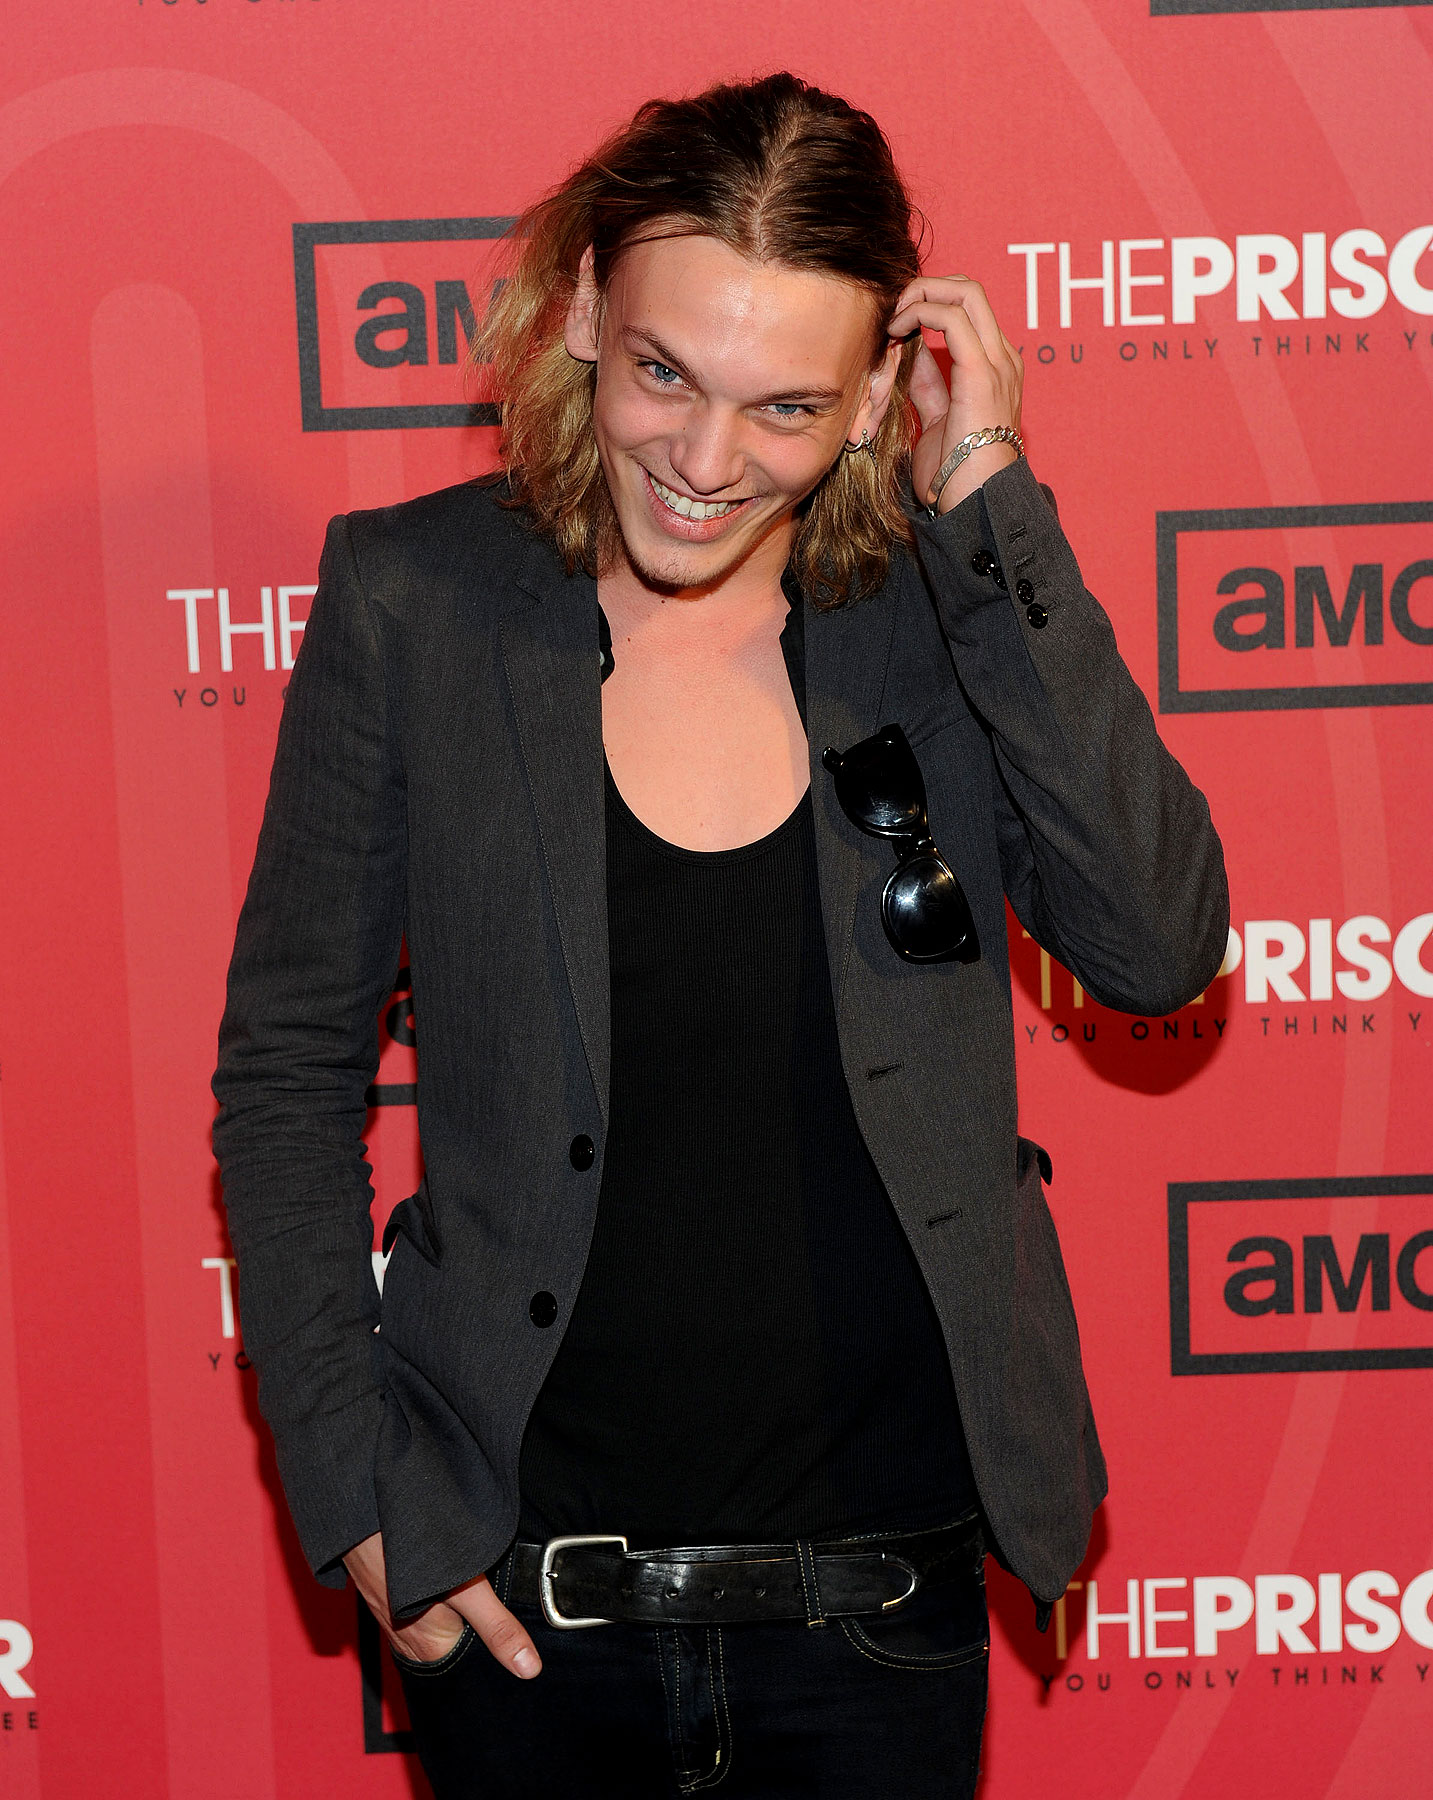 PHOTO GALLERY: Jamie Campbell-Bower at 'The Prisoner'